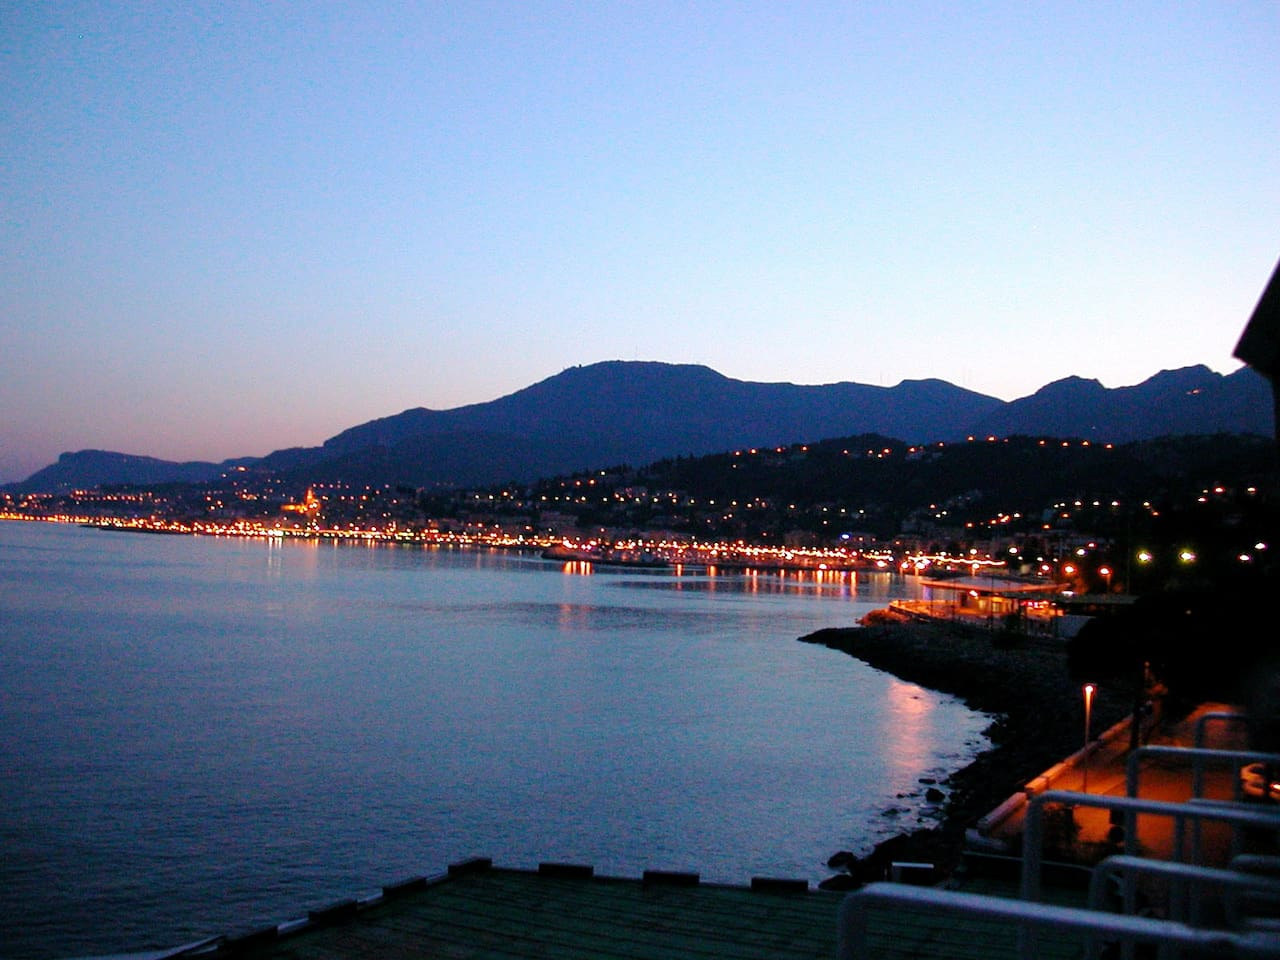 The view on Menton